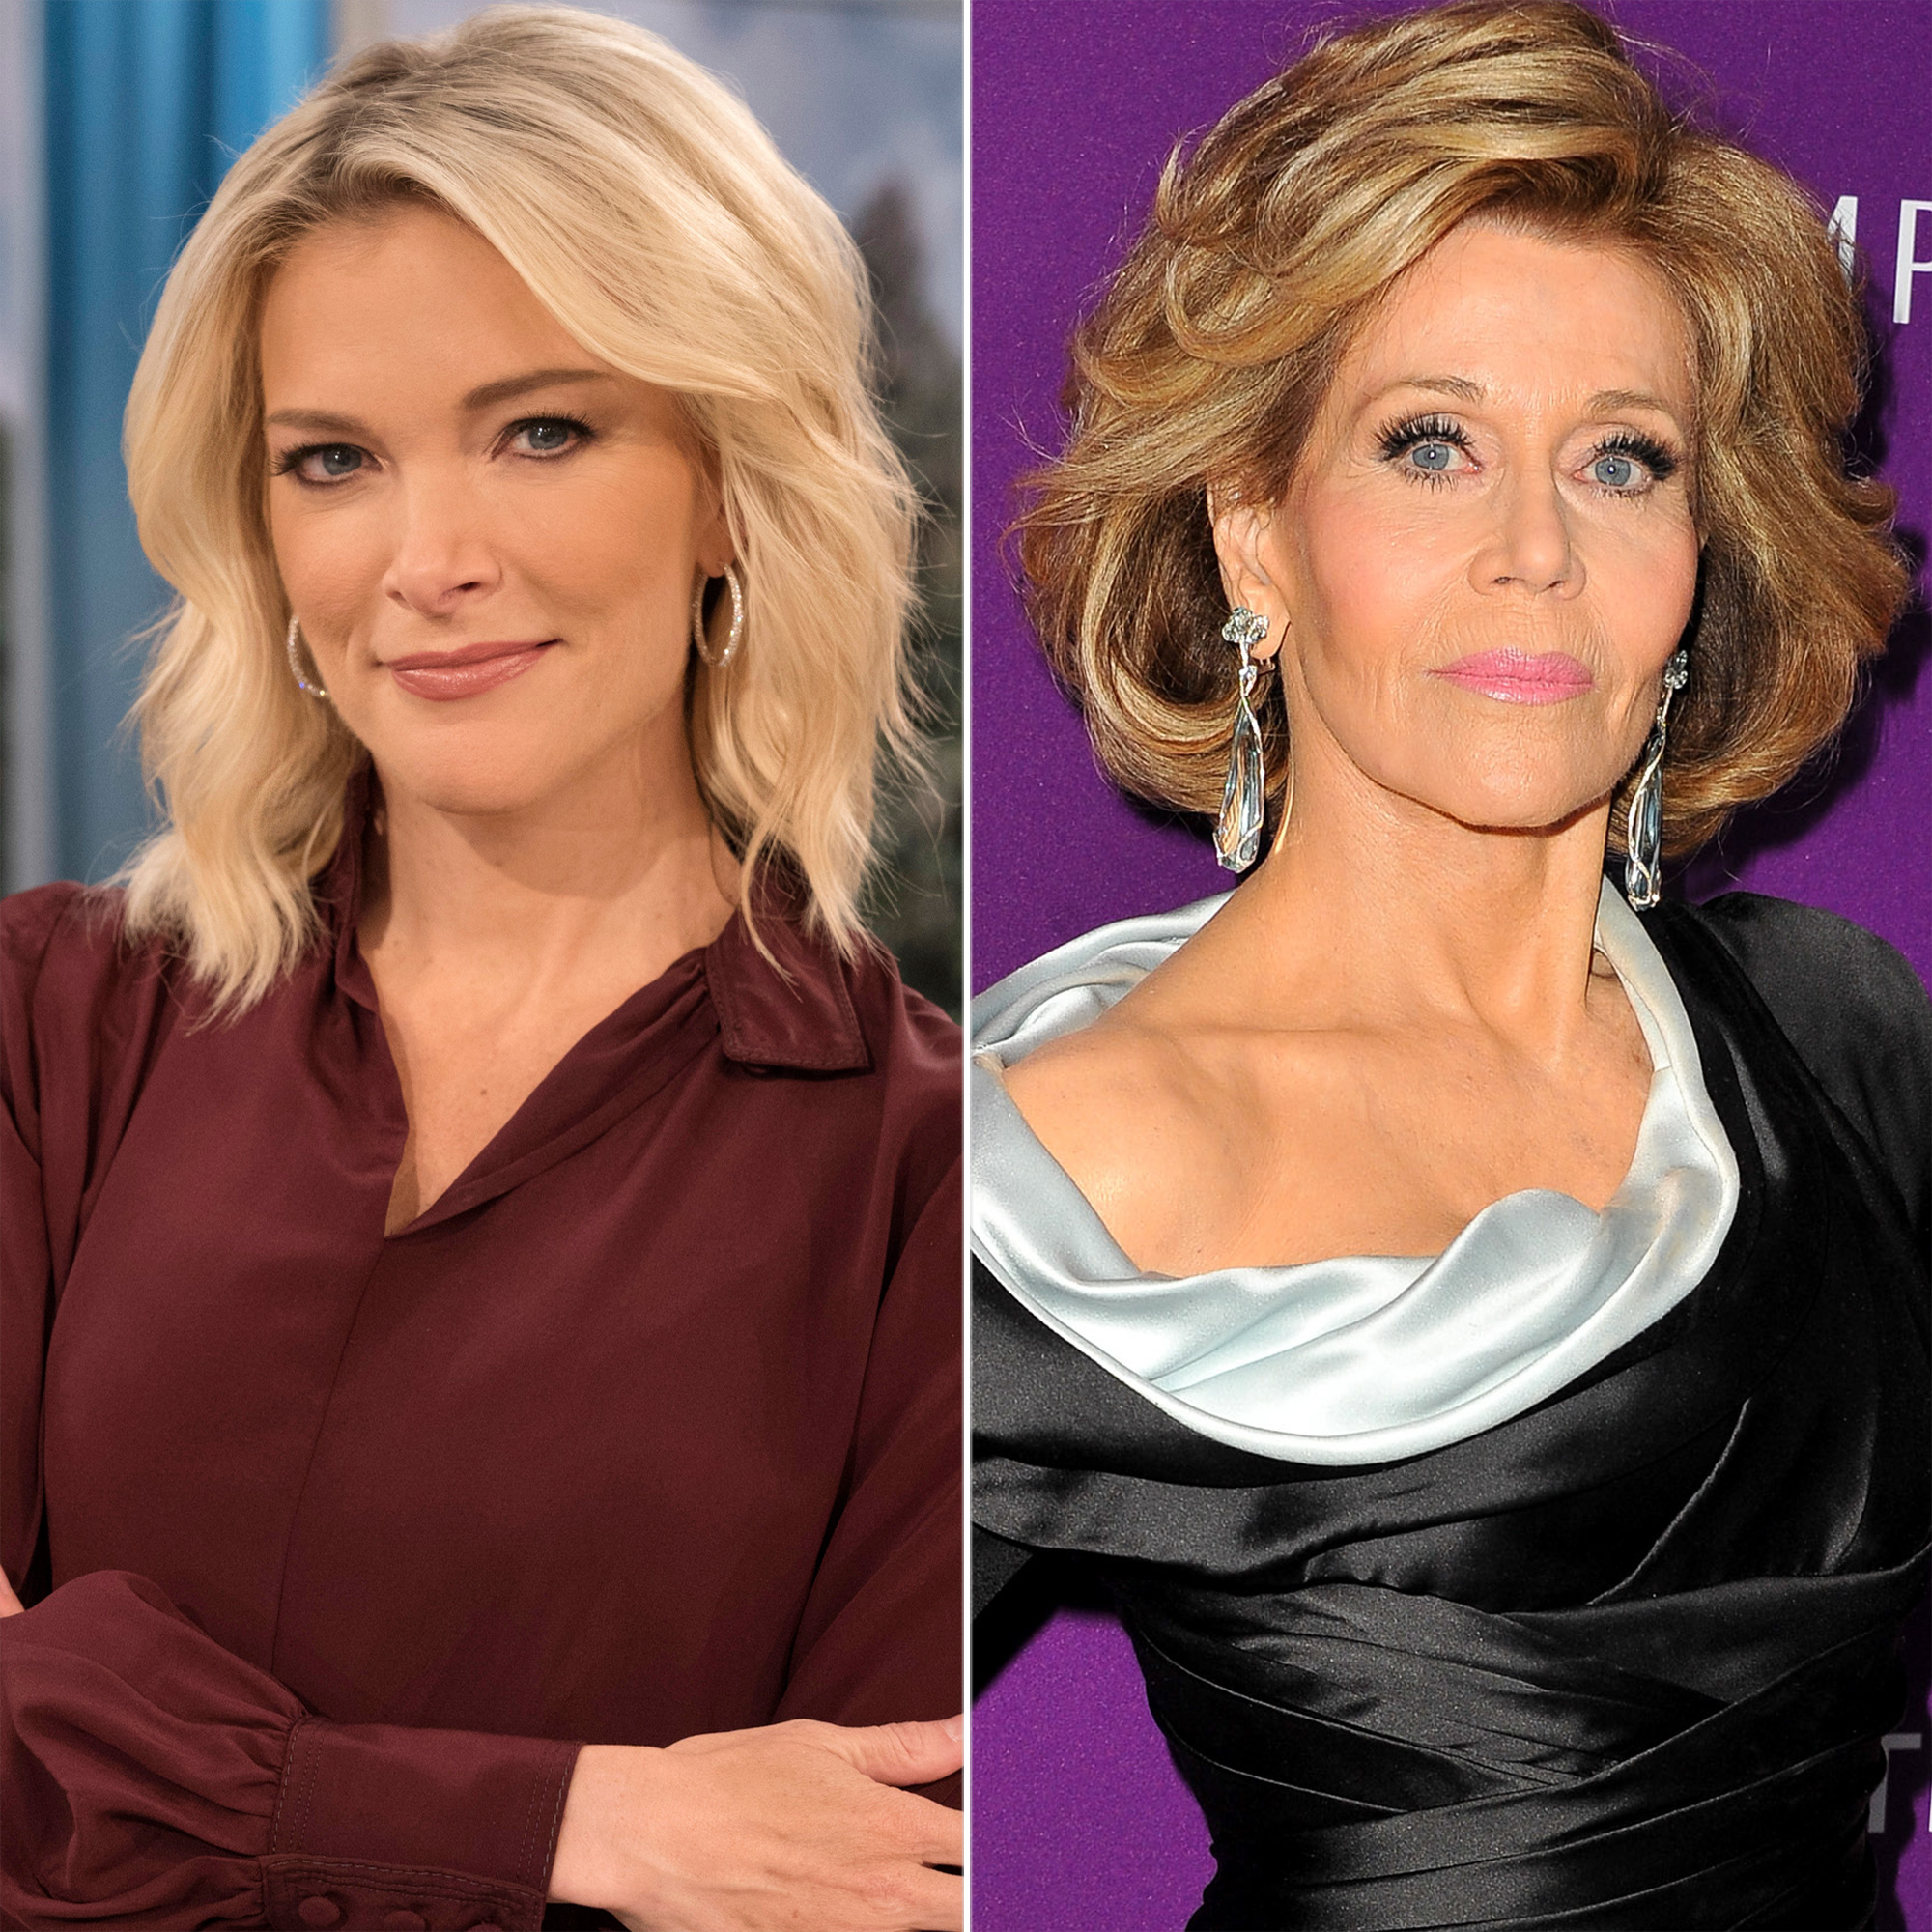 Megyn Kelly and Jane Fonda